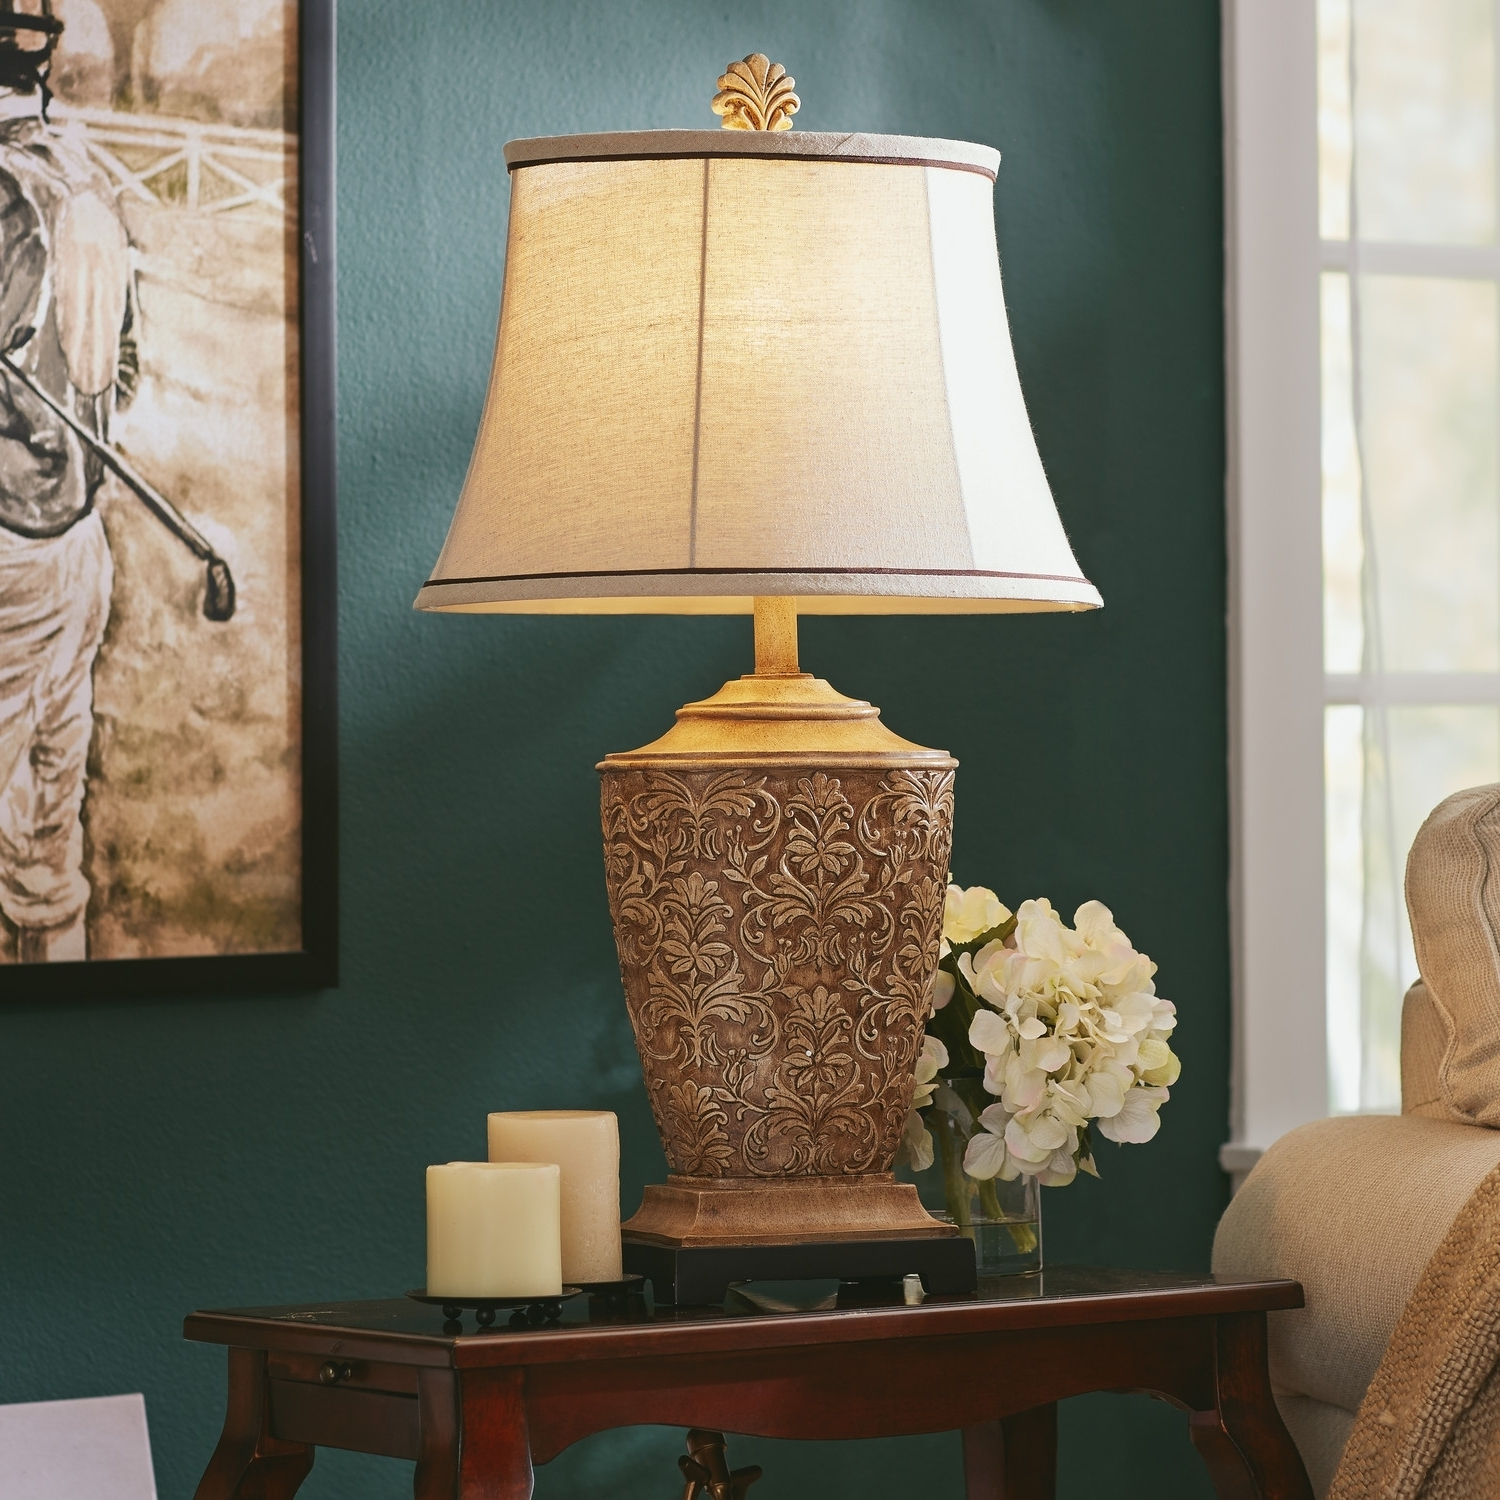 Table Lamps For Living Room 15 With Table Lamps For Living Room Regarding Trendy Formal Living Room Table Lamps (View 4 of 20)